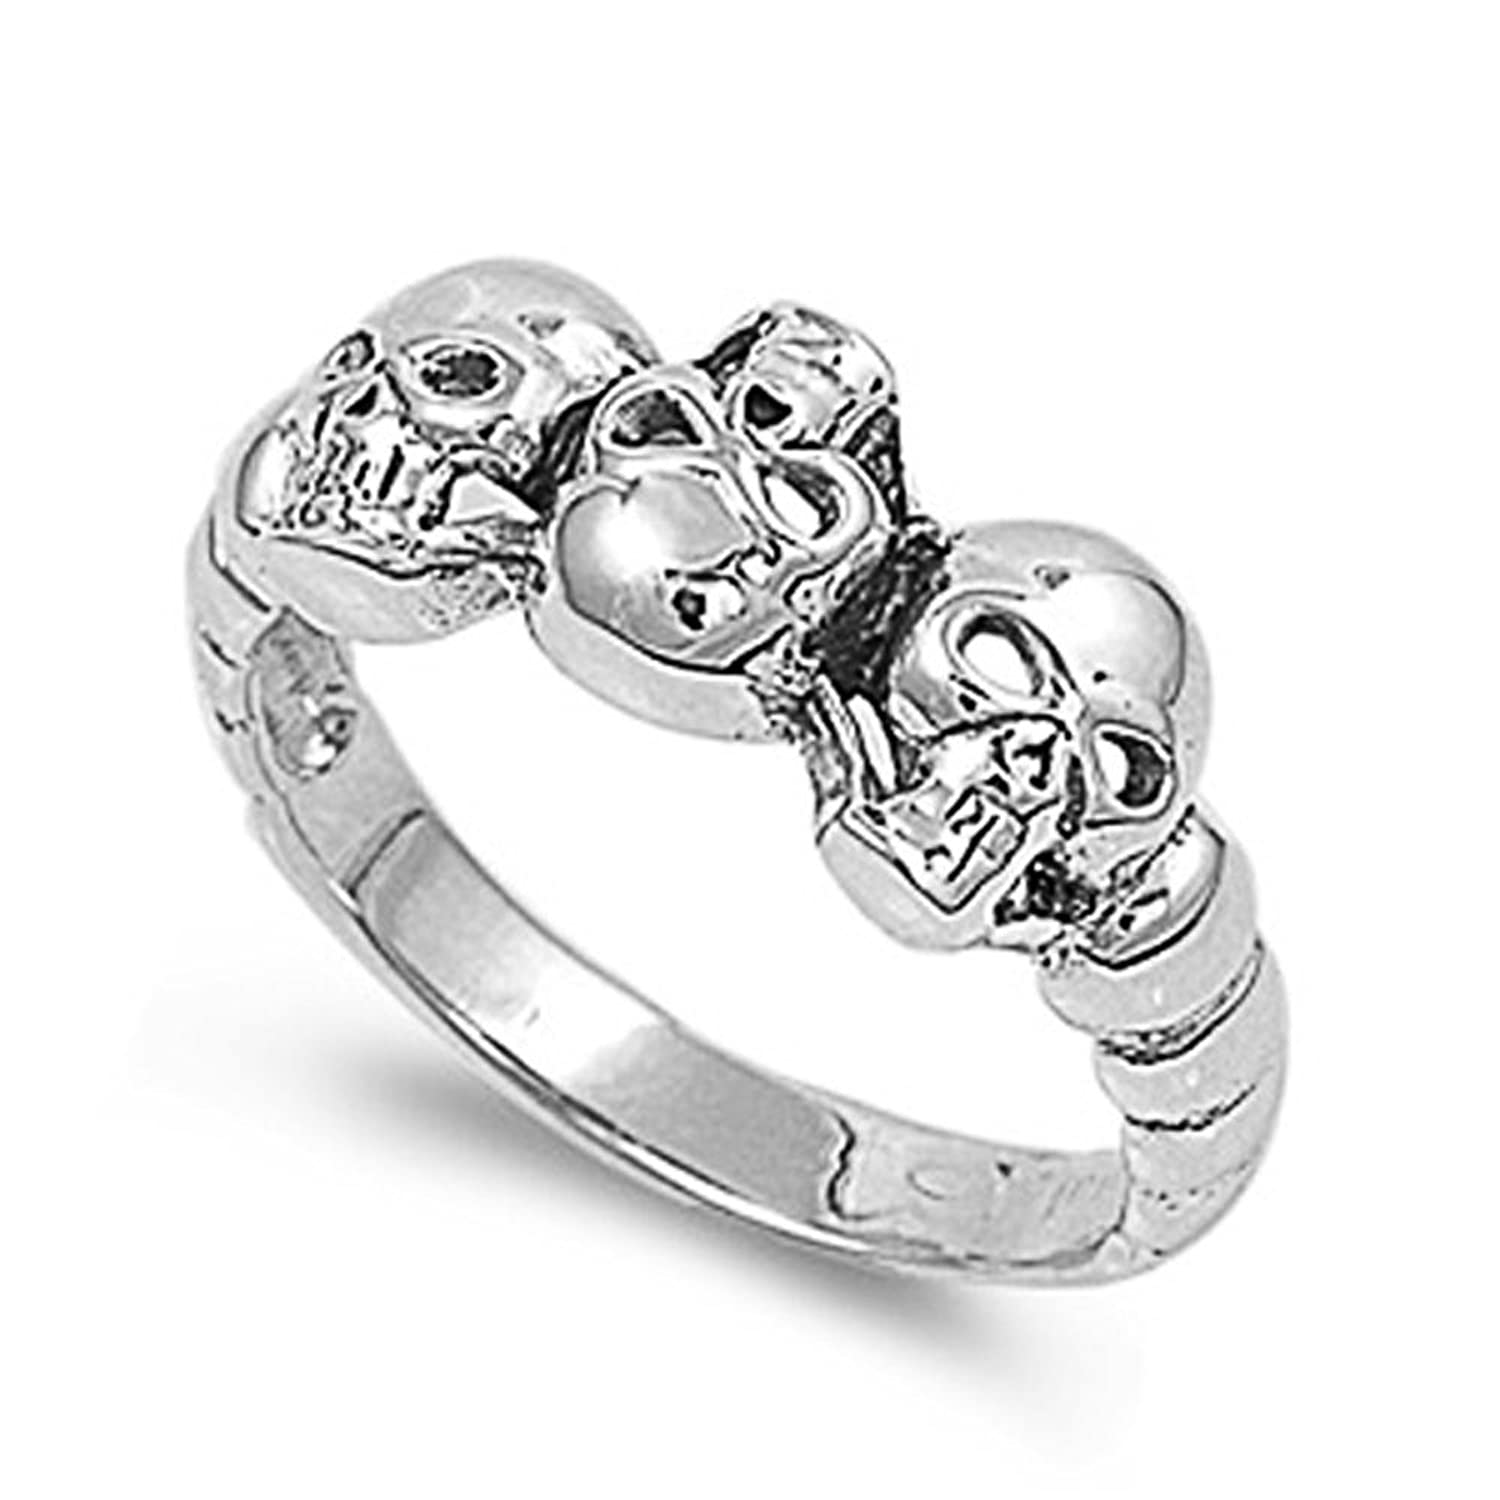 sterling silver wedding engagement ring skulls wedding band ring 9mm size 5 to 15 amazoncom - Skull Wedding Rings For Men